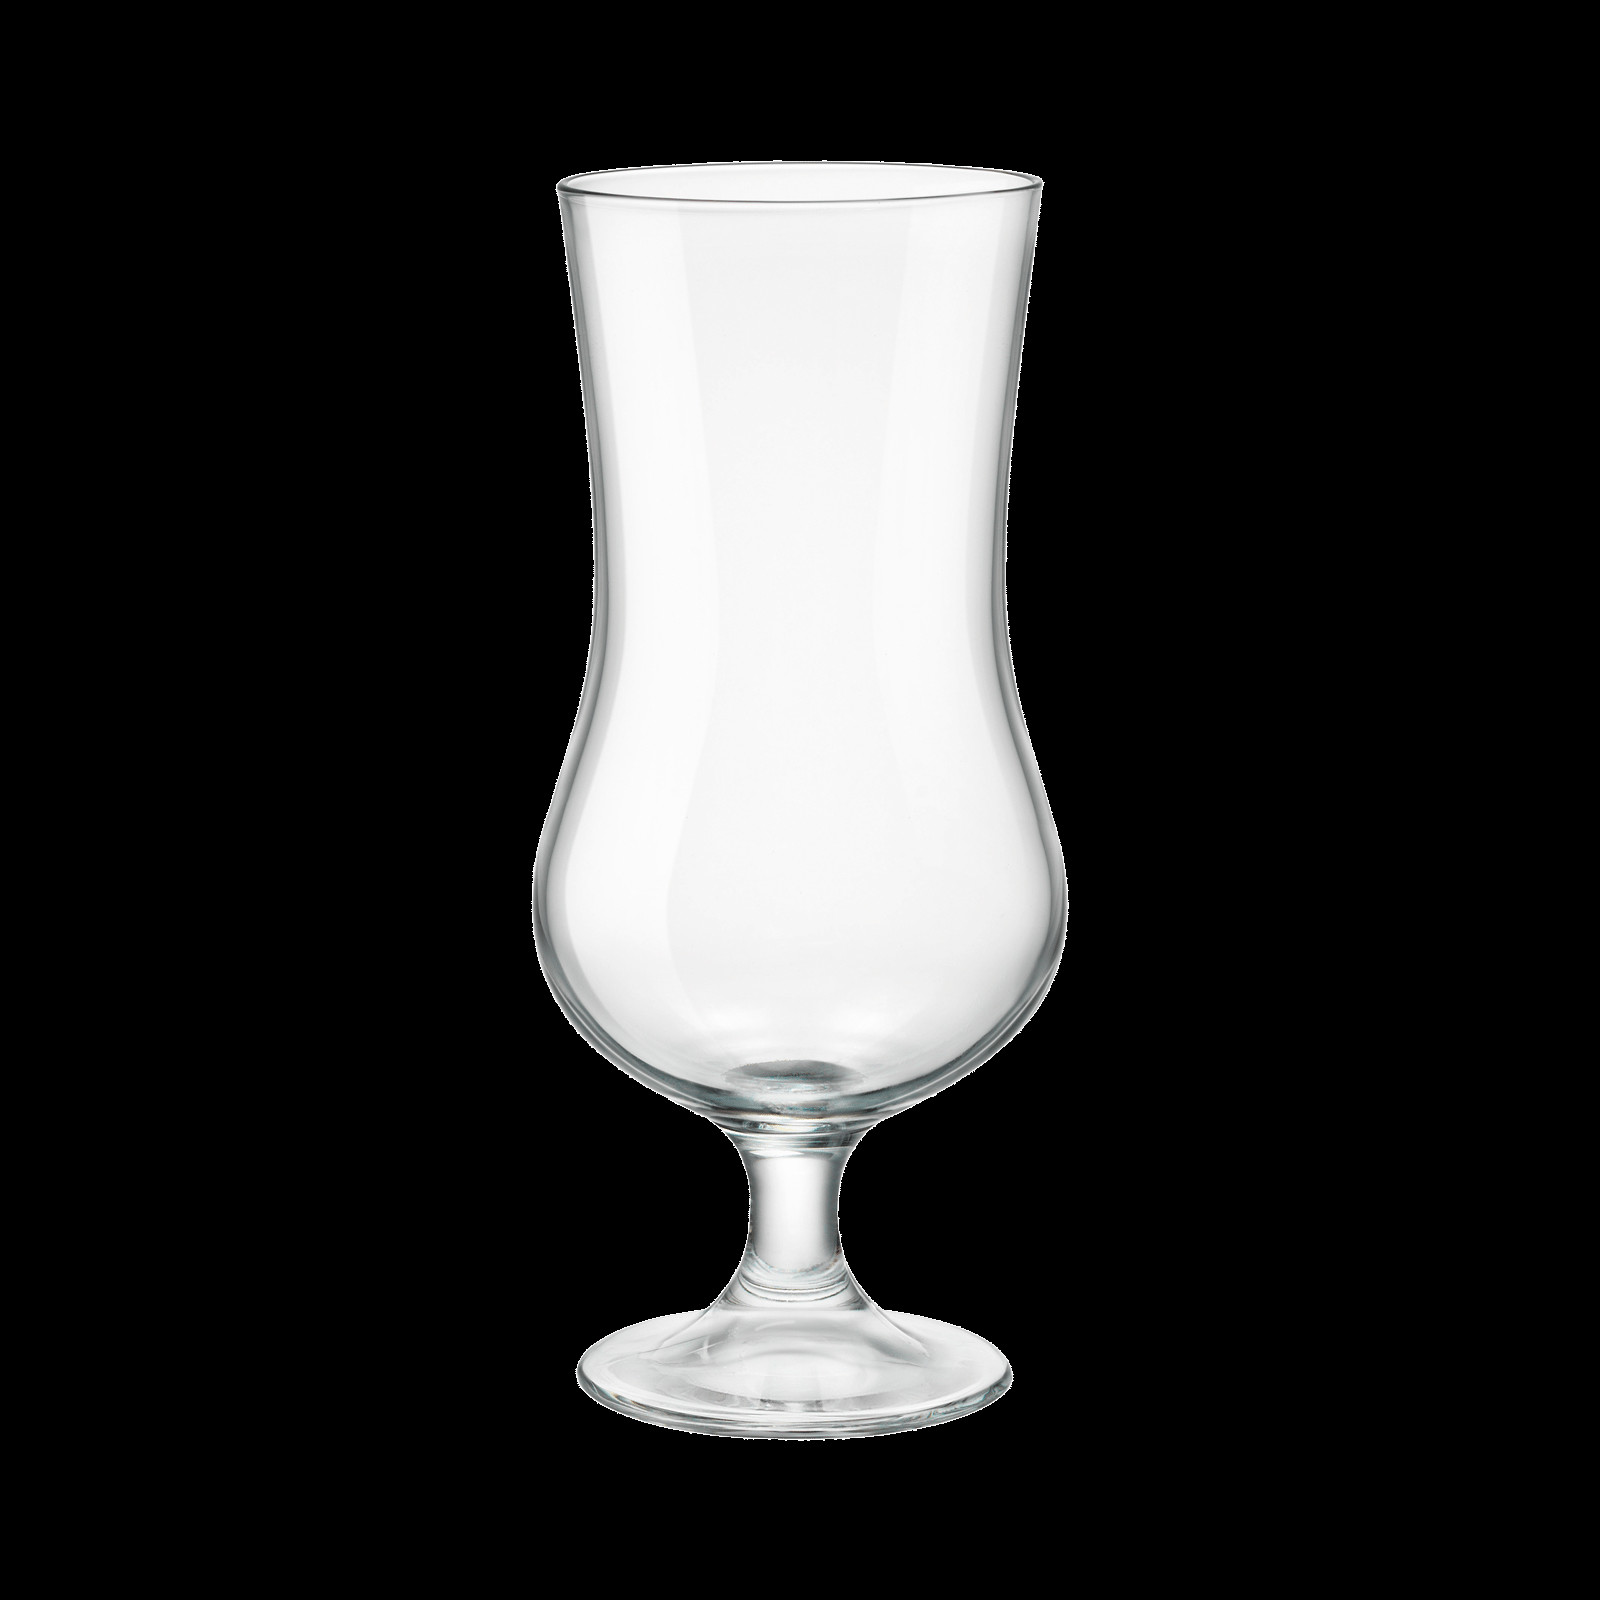 3 foot tall glass vases of archivi products bormioli rocco with regard to large beer glass